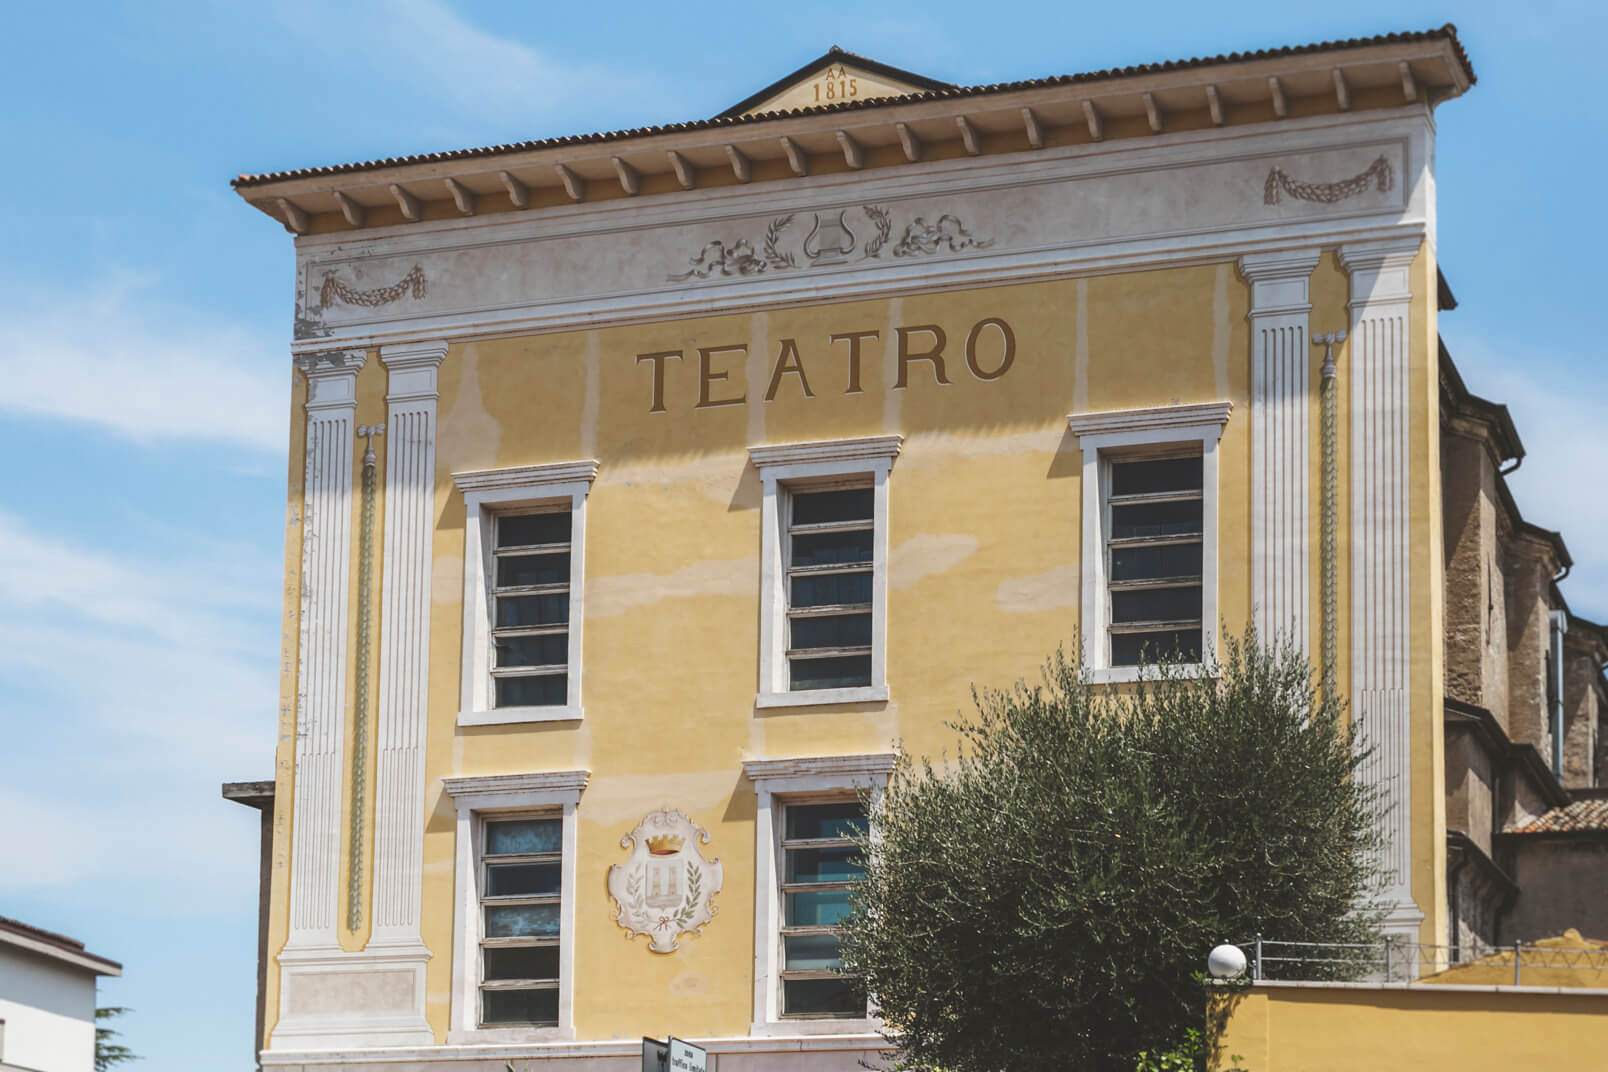 Desenzano, Teatro Alberti: the facade. This was the wedding venue.